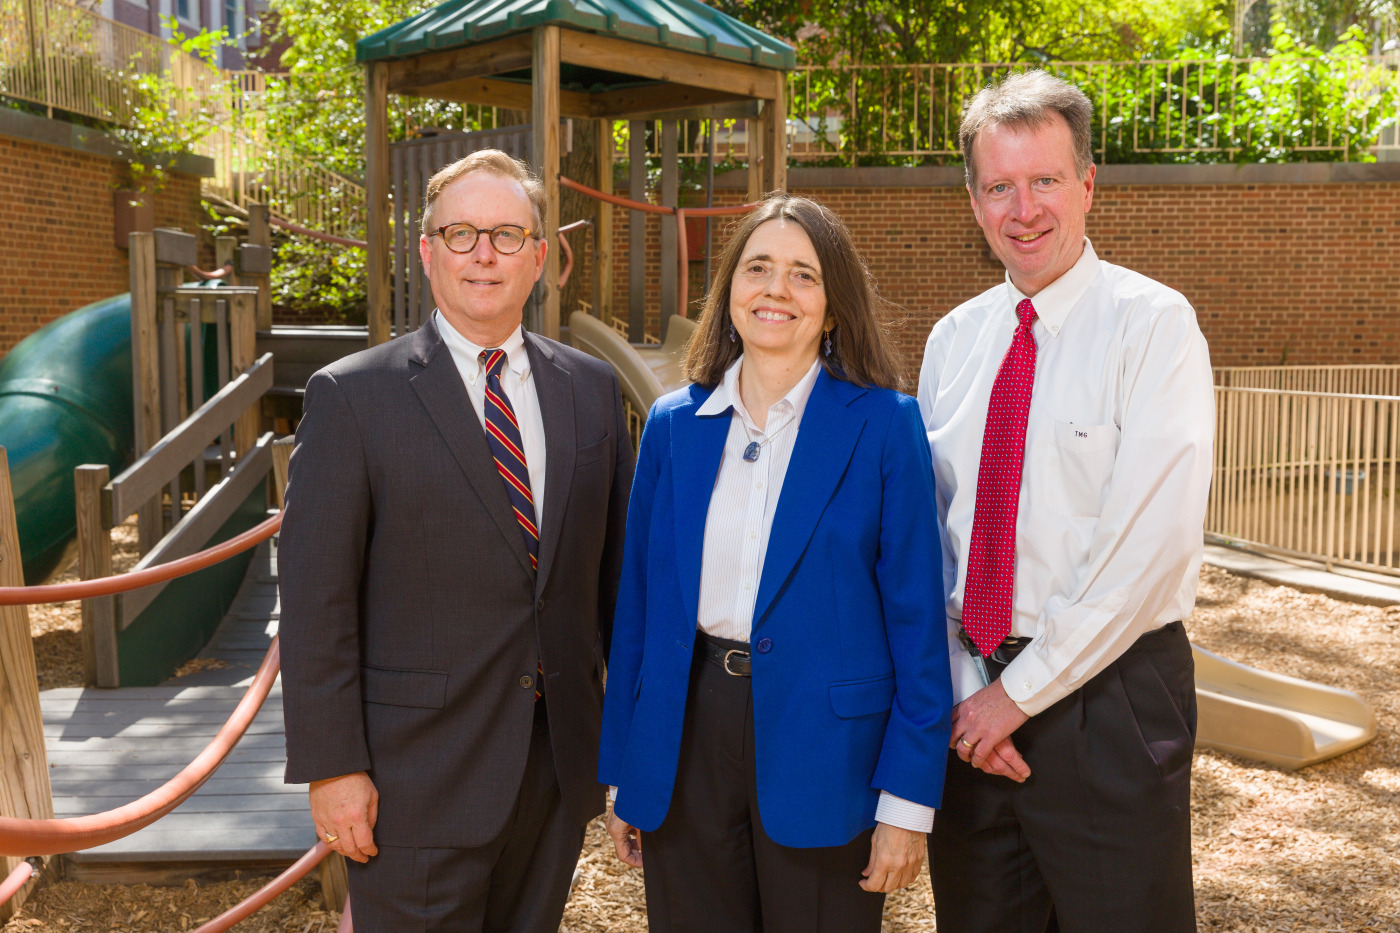 From left to right: Clifford W. Bogue, MD; Linda C. Mayes, MD; and Thomas M. Gill, MD.